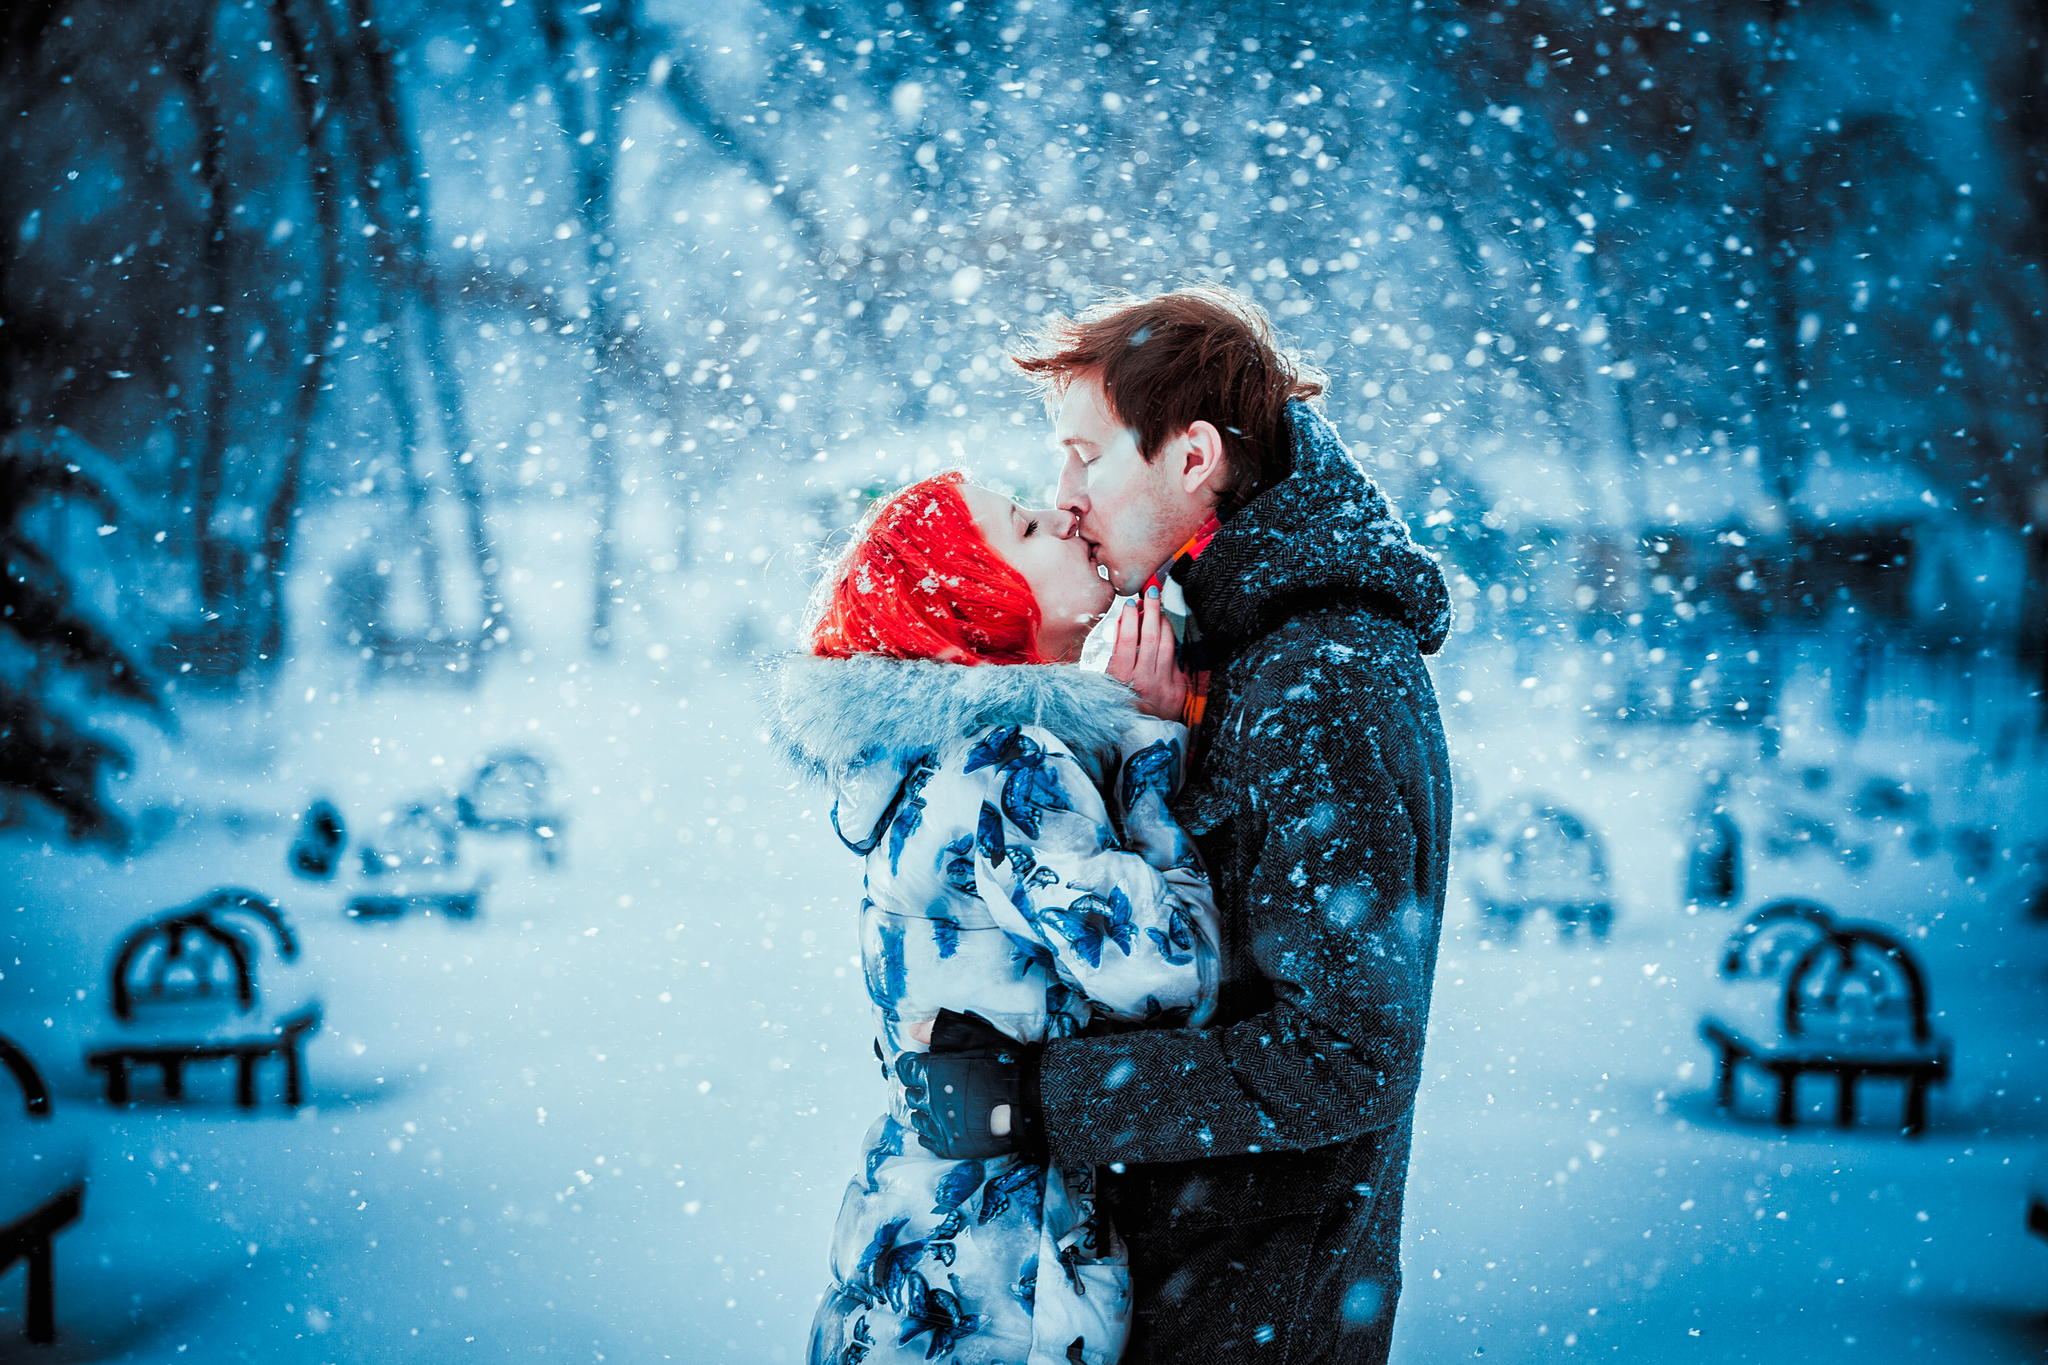 Happy Kiss Day Fresh HD Wallpapers And Romantic Gifts For Kiss Day